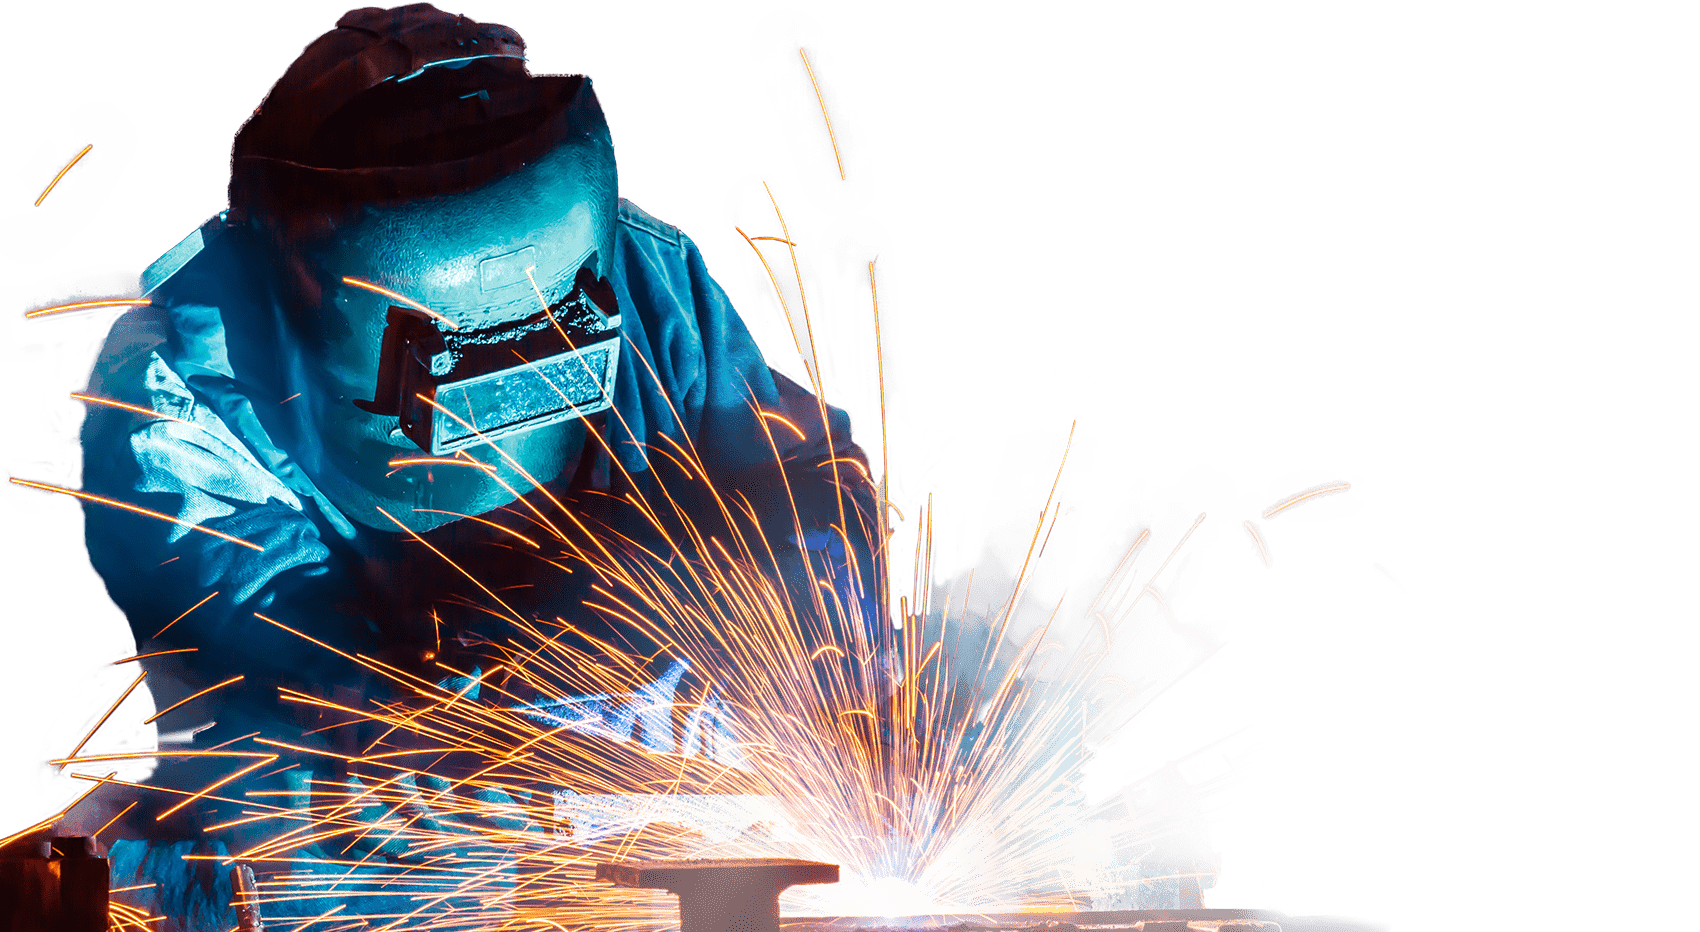 Man Welding Png Free Man Welding Png Transparent Images 114161 Pngio